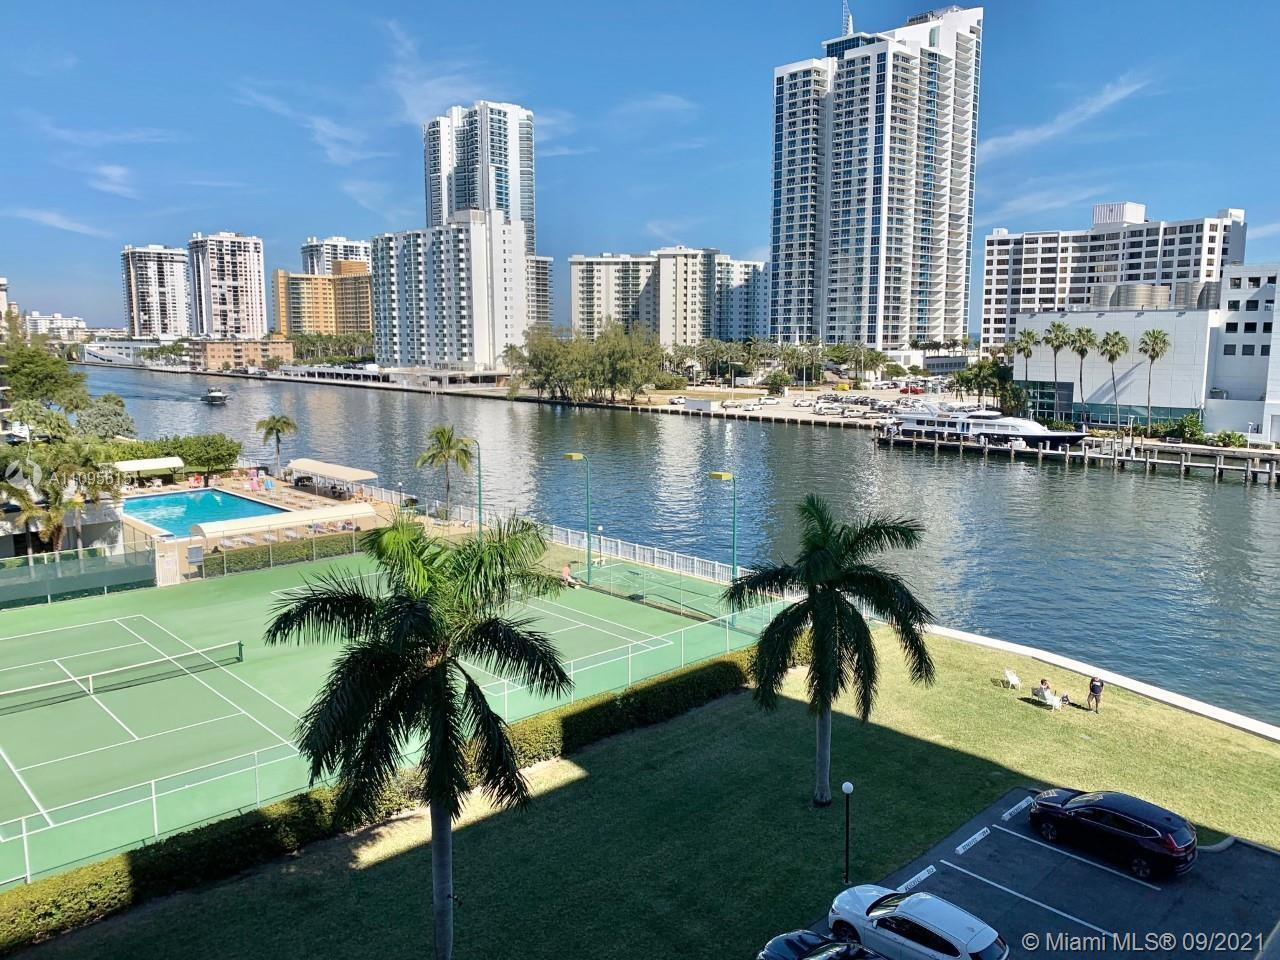 WATER VIEWS FROM EVERY ROOM! Opportunity strikes! Gorgeous 2 bedroom/2 bath condo directly on the in